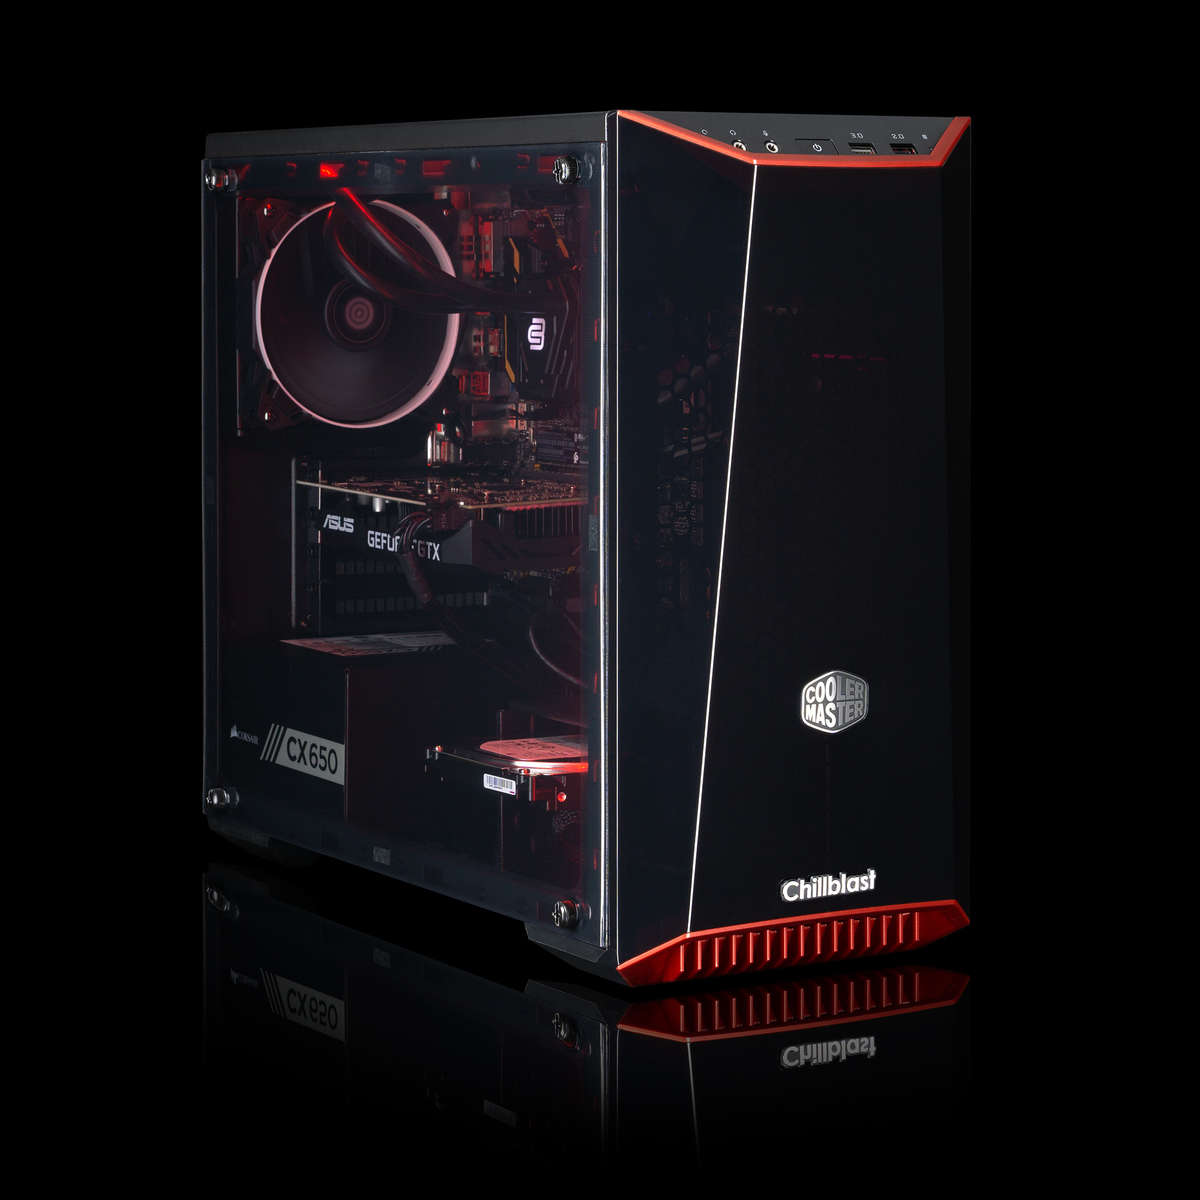 Image of the pre-built Chillblast Neptune Advanced Gaming PC against a dark background.